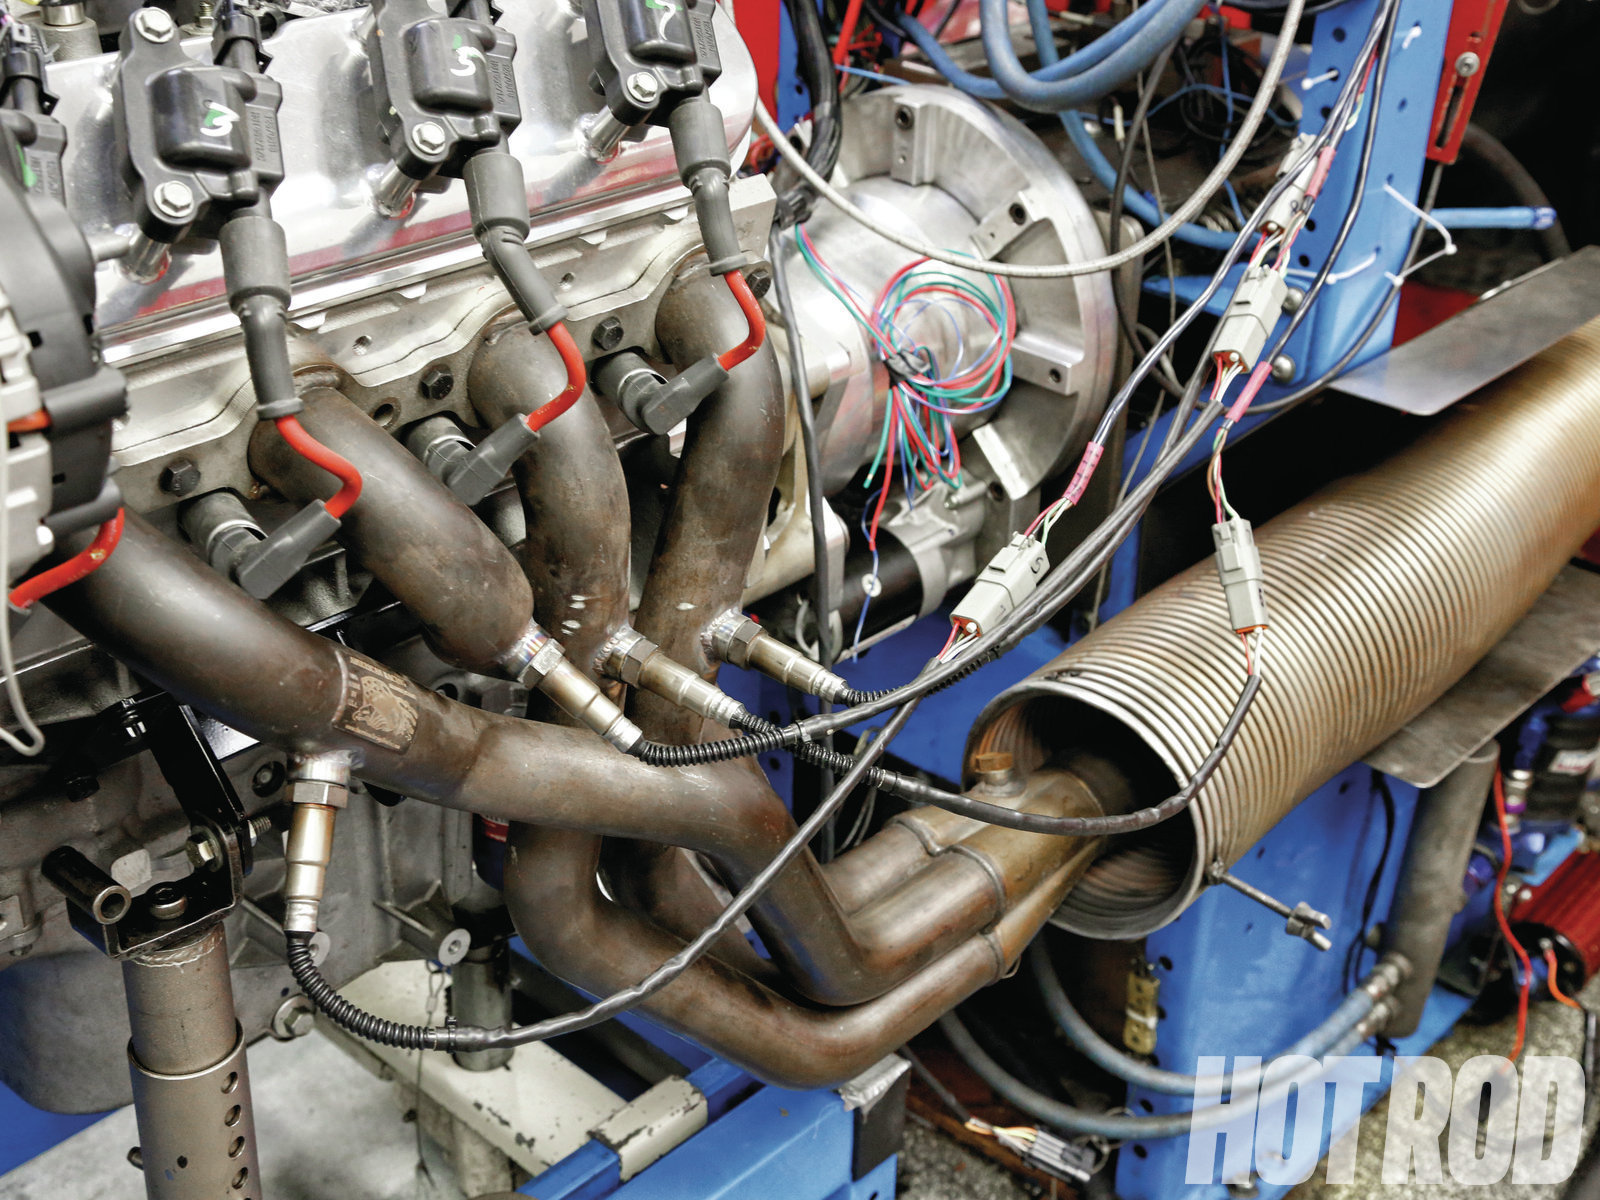 [12] In SAM's dyno cell, the headers empty exhaust into two corrugated, stainless-steel tubes that direct gasses into two giant mufflers located in an adjacent cell. The exhaust is then routed to the roof and pulled outside the building with two large fans. In other types of cells, exhaust empties directly into the room and gets sucked out by heavy-duty ventilation fans. Poor ventilation can easily reduce power output by 10 percent or more, as the engine can become contaminated with its own exhaust fumes.